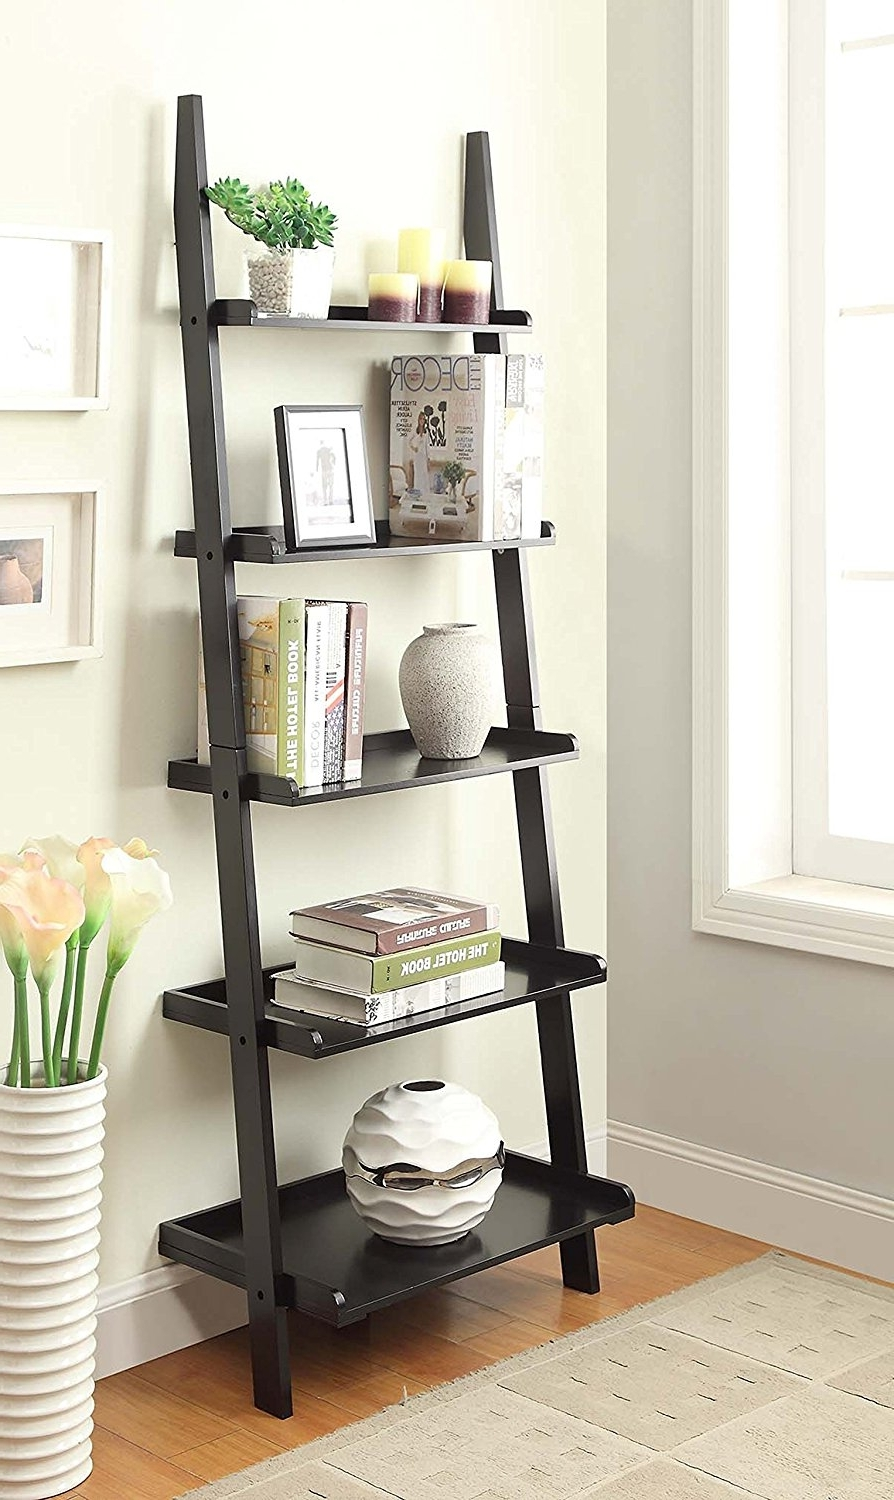 Leaning Shelf Bookcases Regarding Well Known Amazon: Convenience Concepts American Heritage Bookshelf (View 4 of 15)